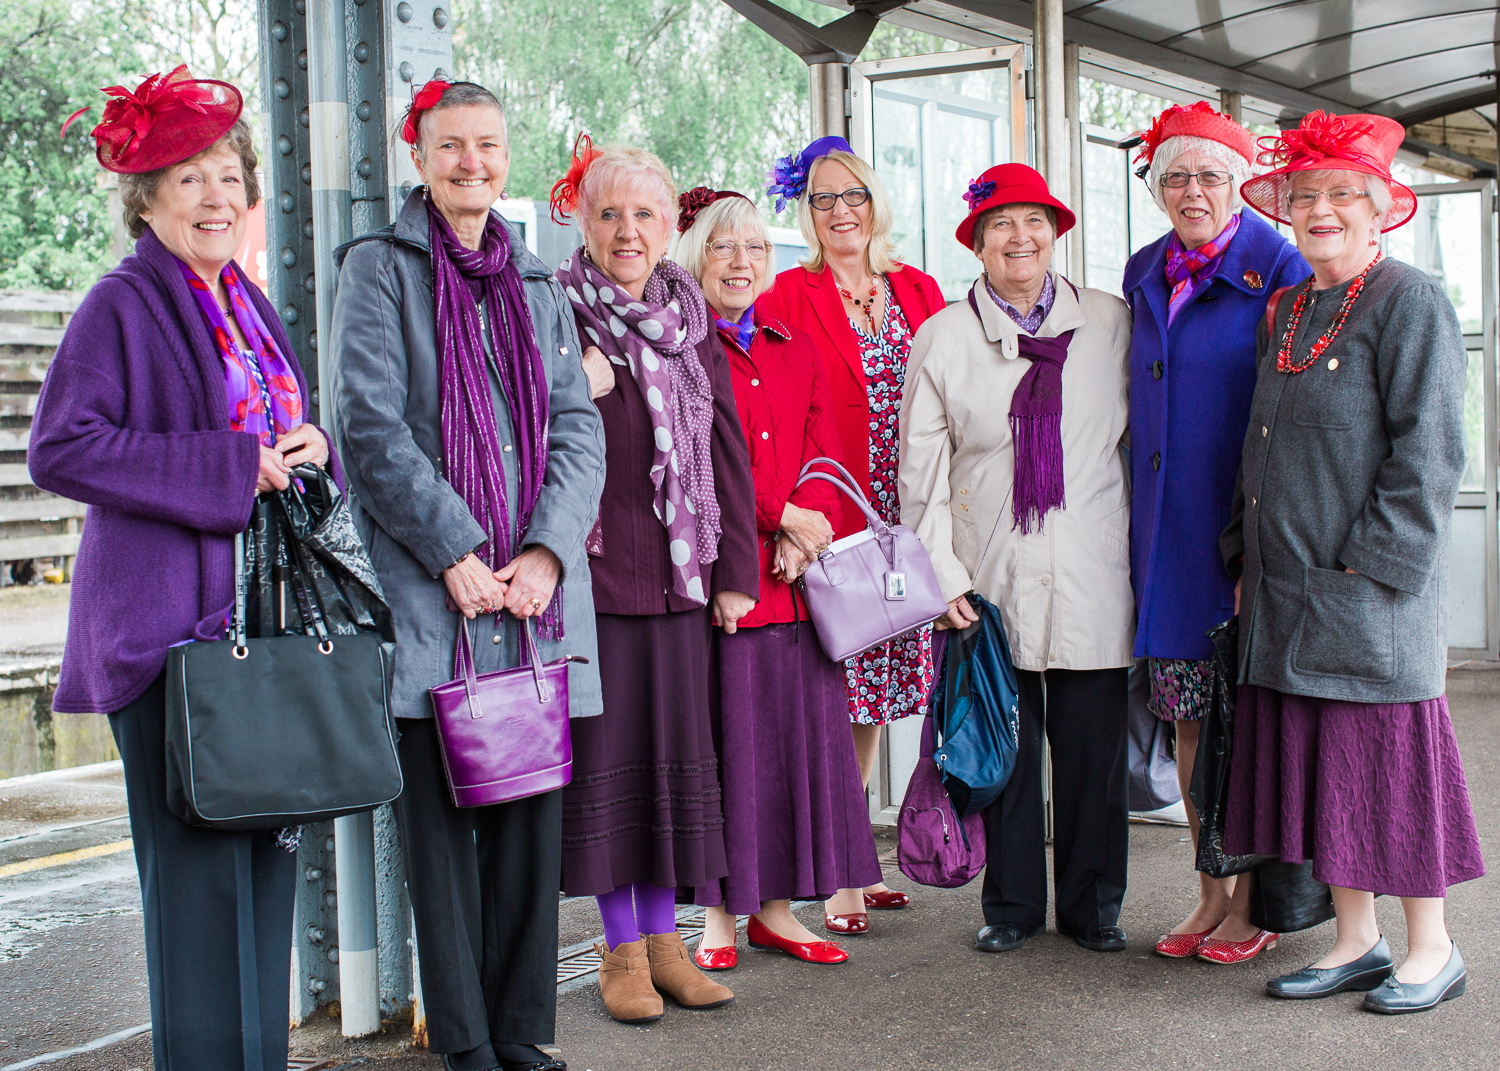 Members of the Red Hat Society